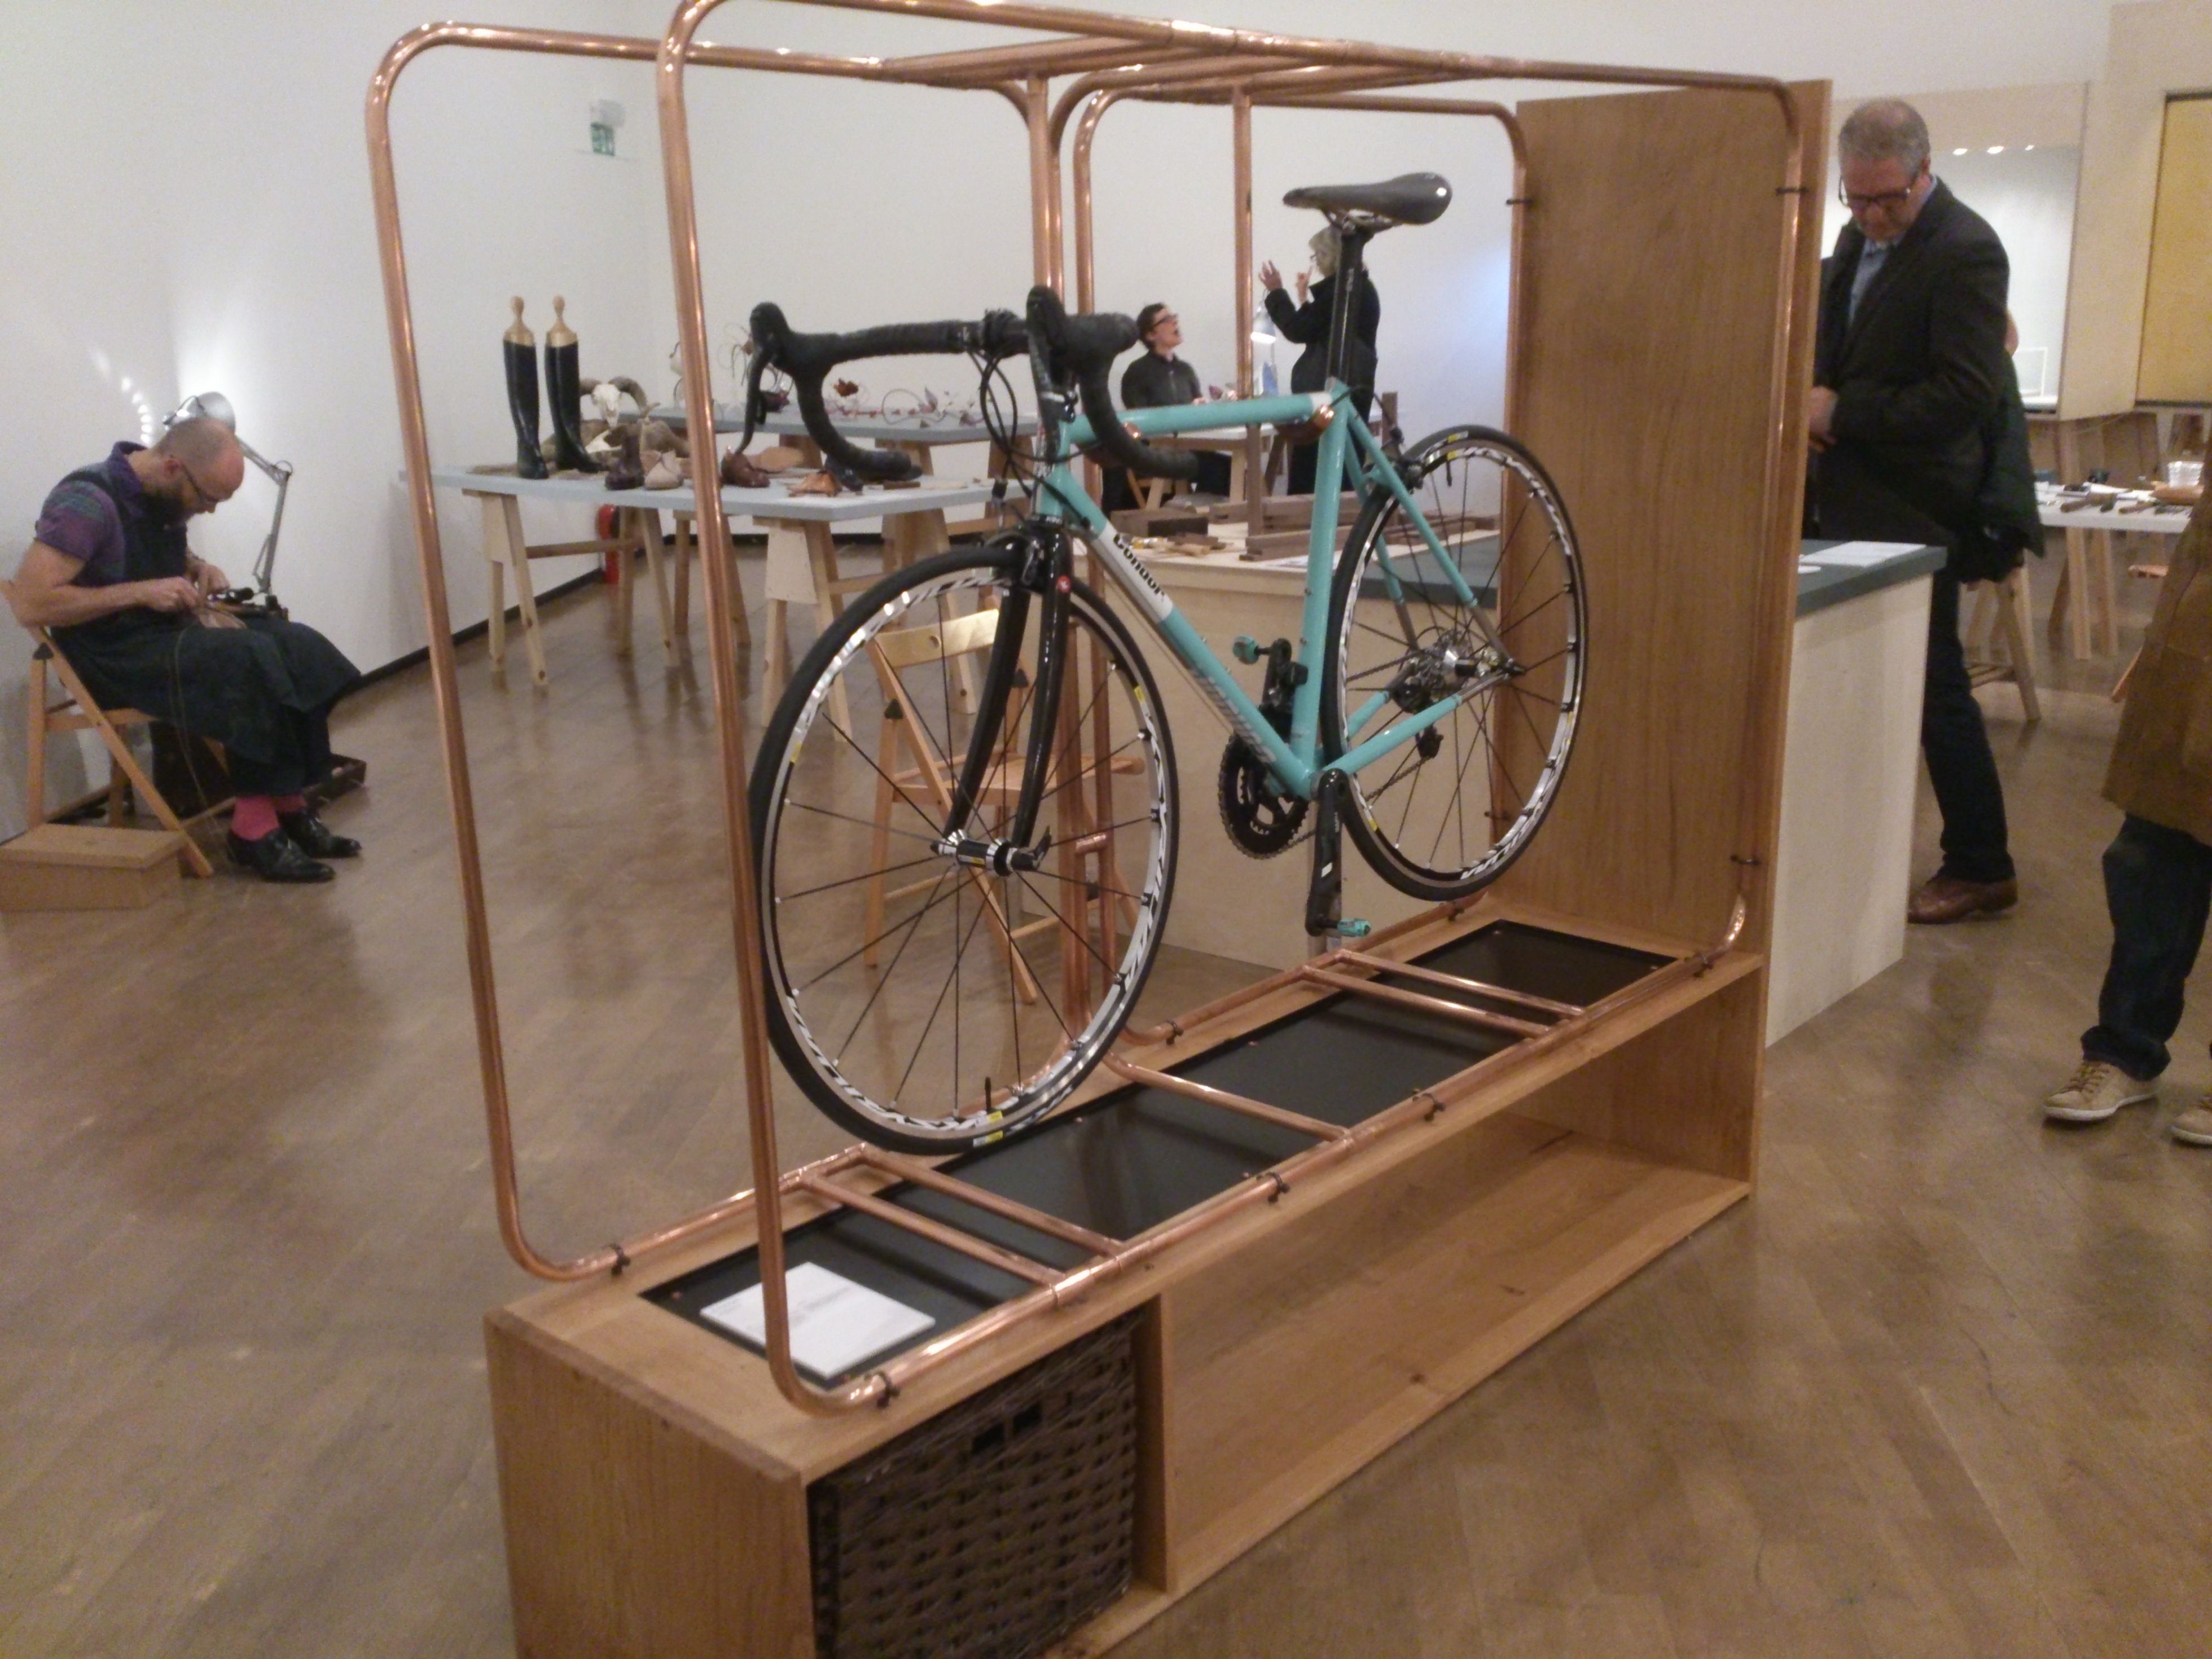 The most magnificent bike stand you'll ever see. By Method Studio @ Walpole Crafted.